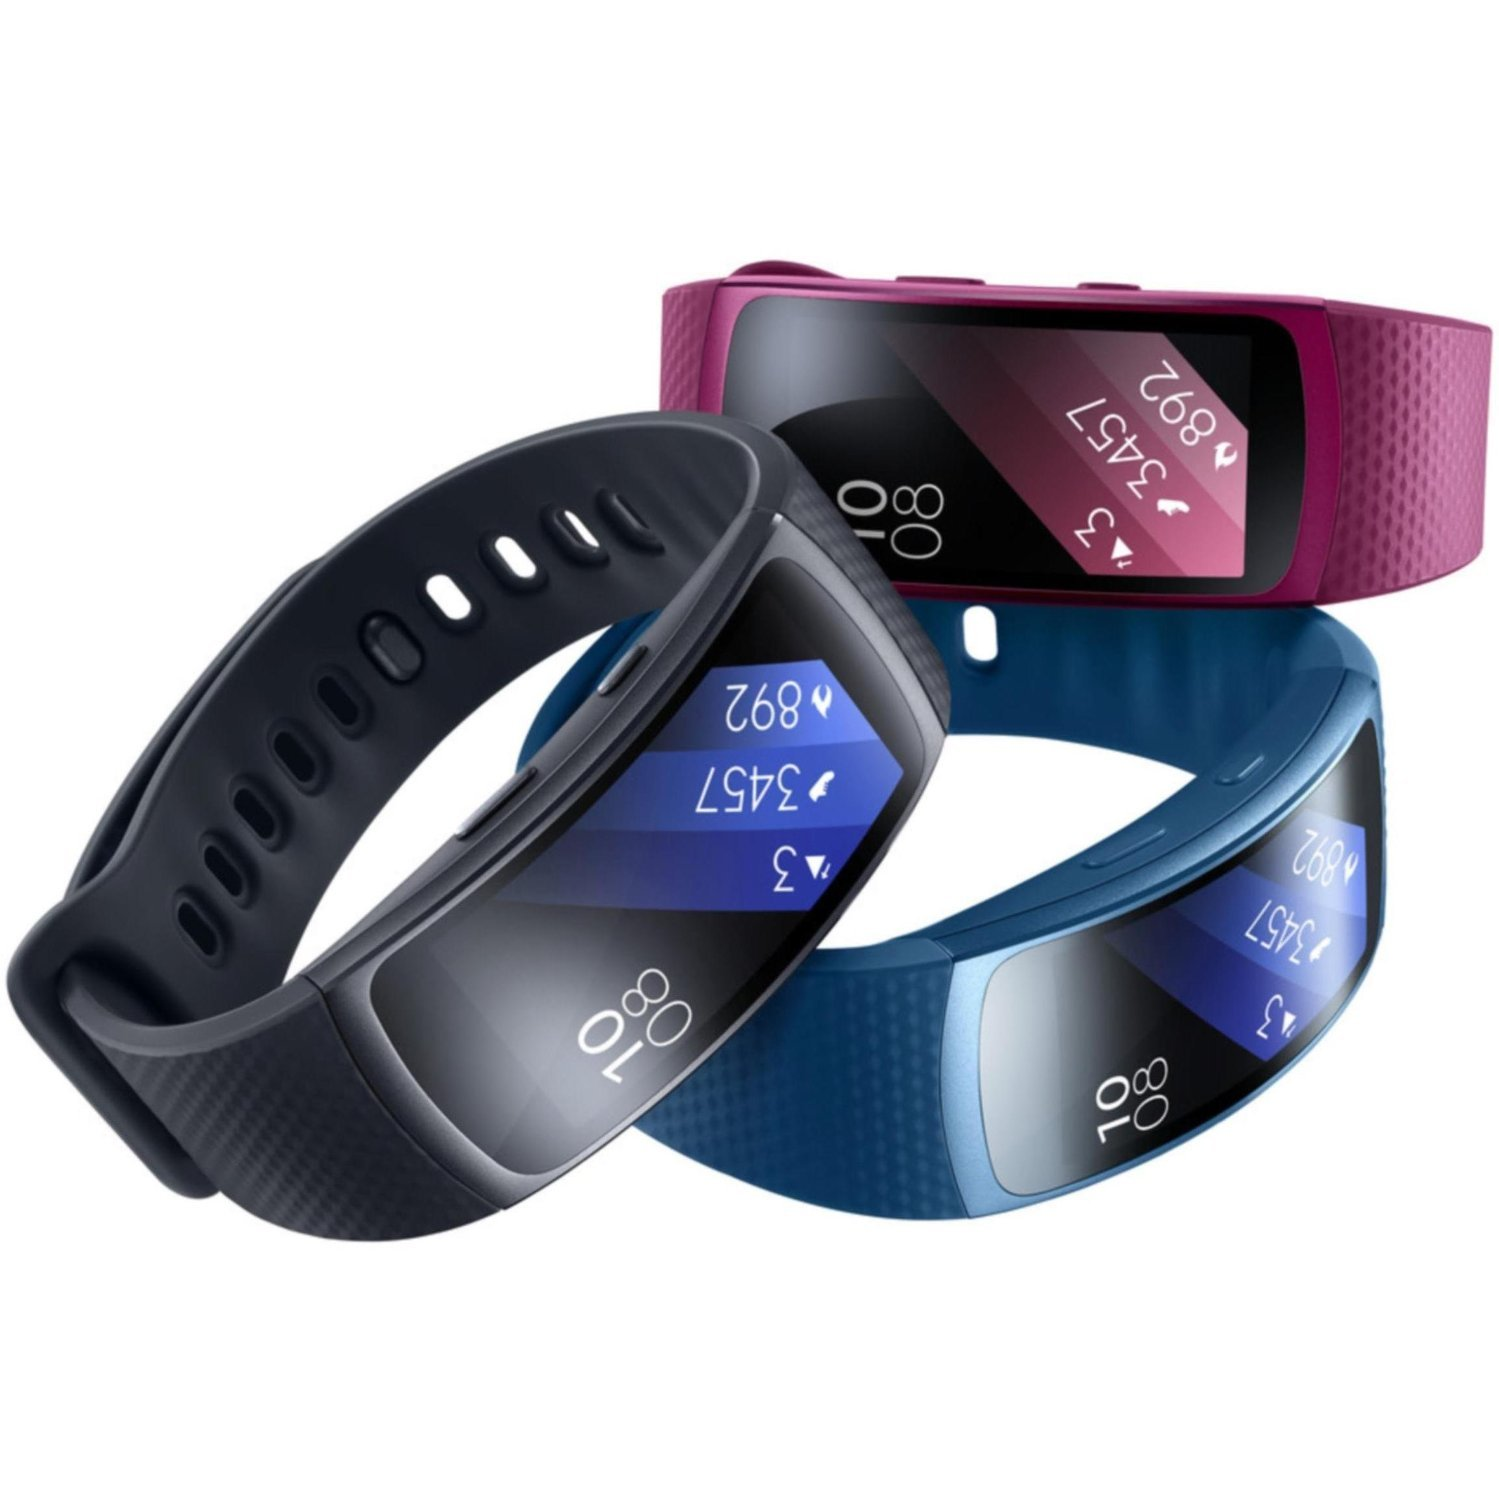 Samsung Gear Fit2 SM-R360 Sports Band Smartwatch/iPhone Compatible [Asia Version] (Pink - Small)